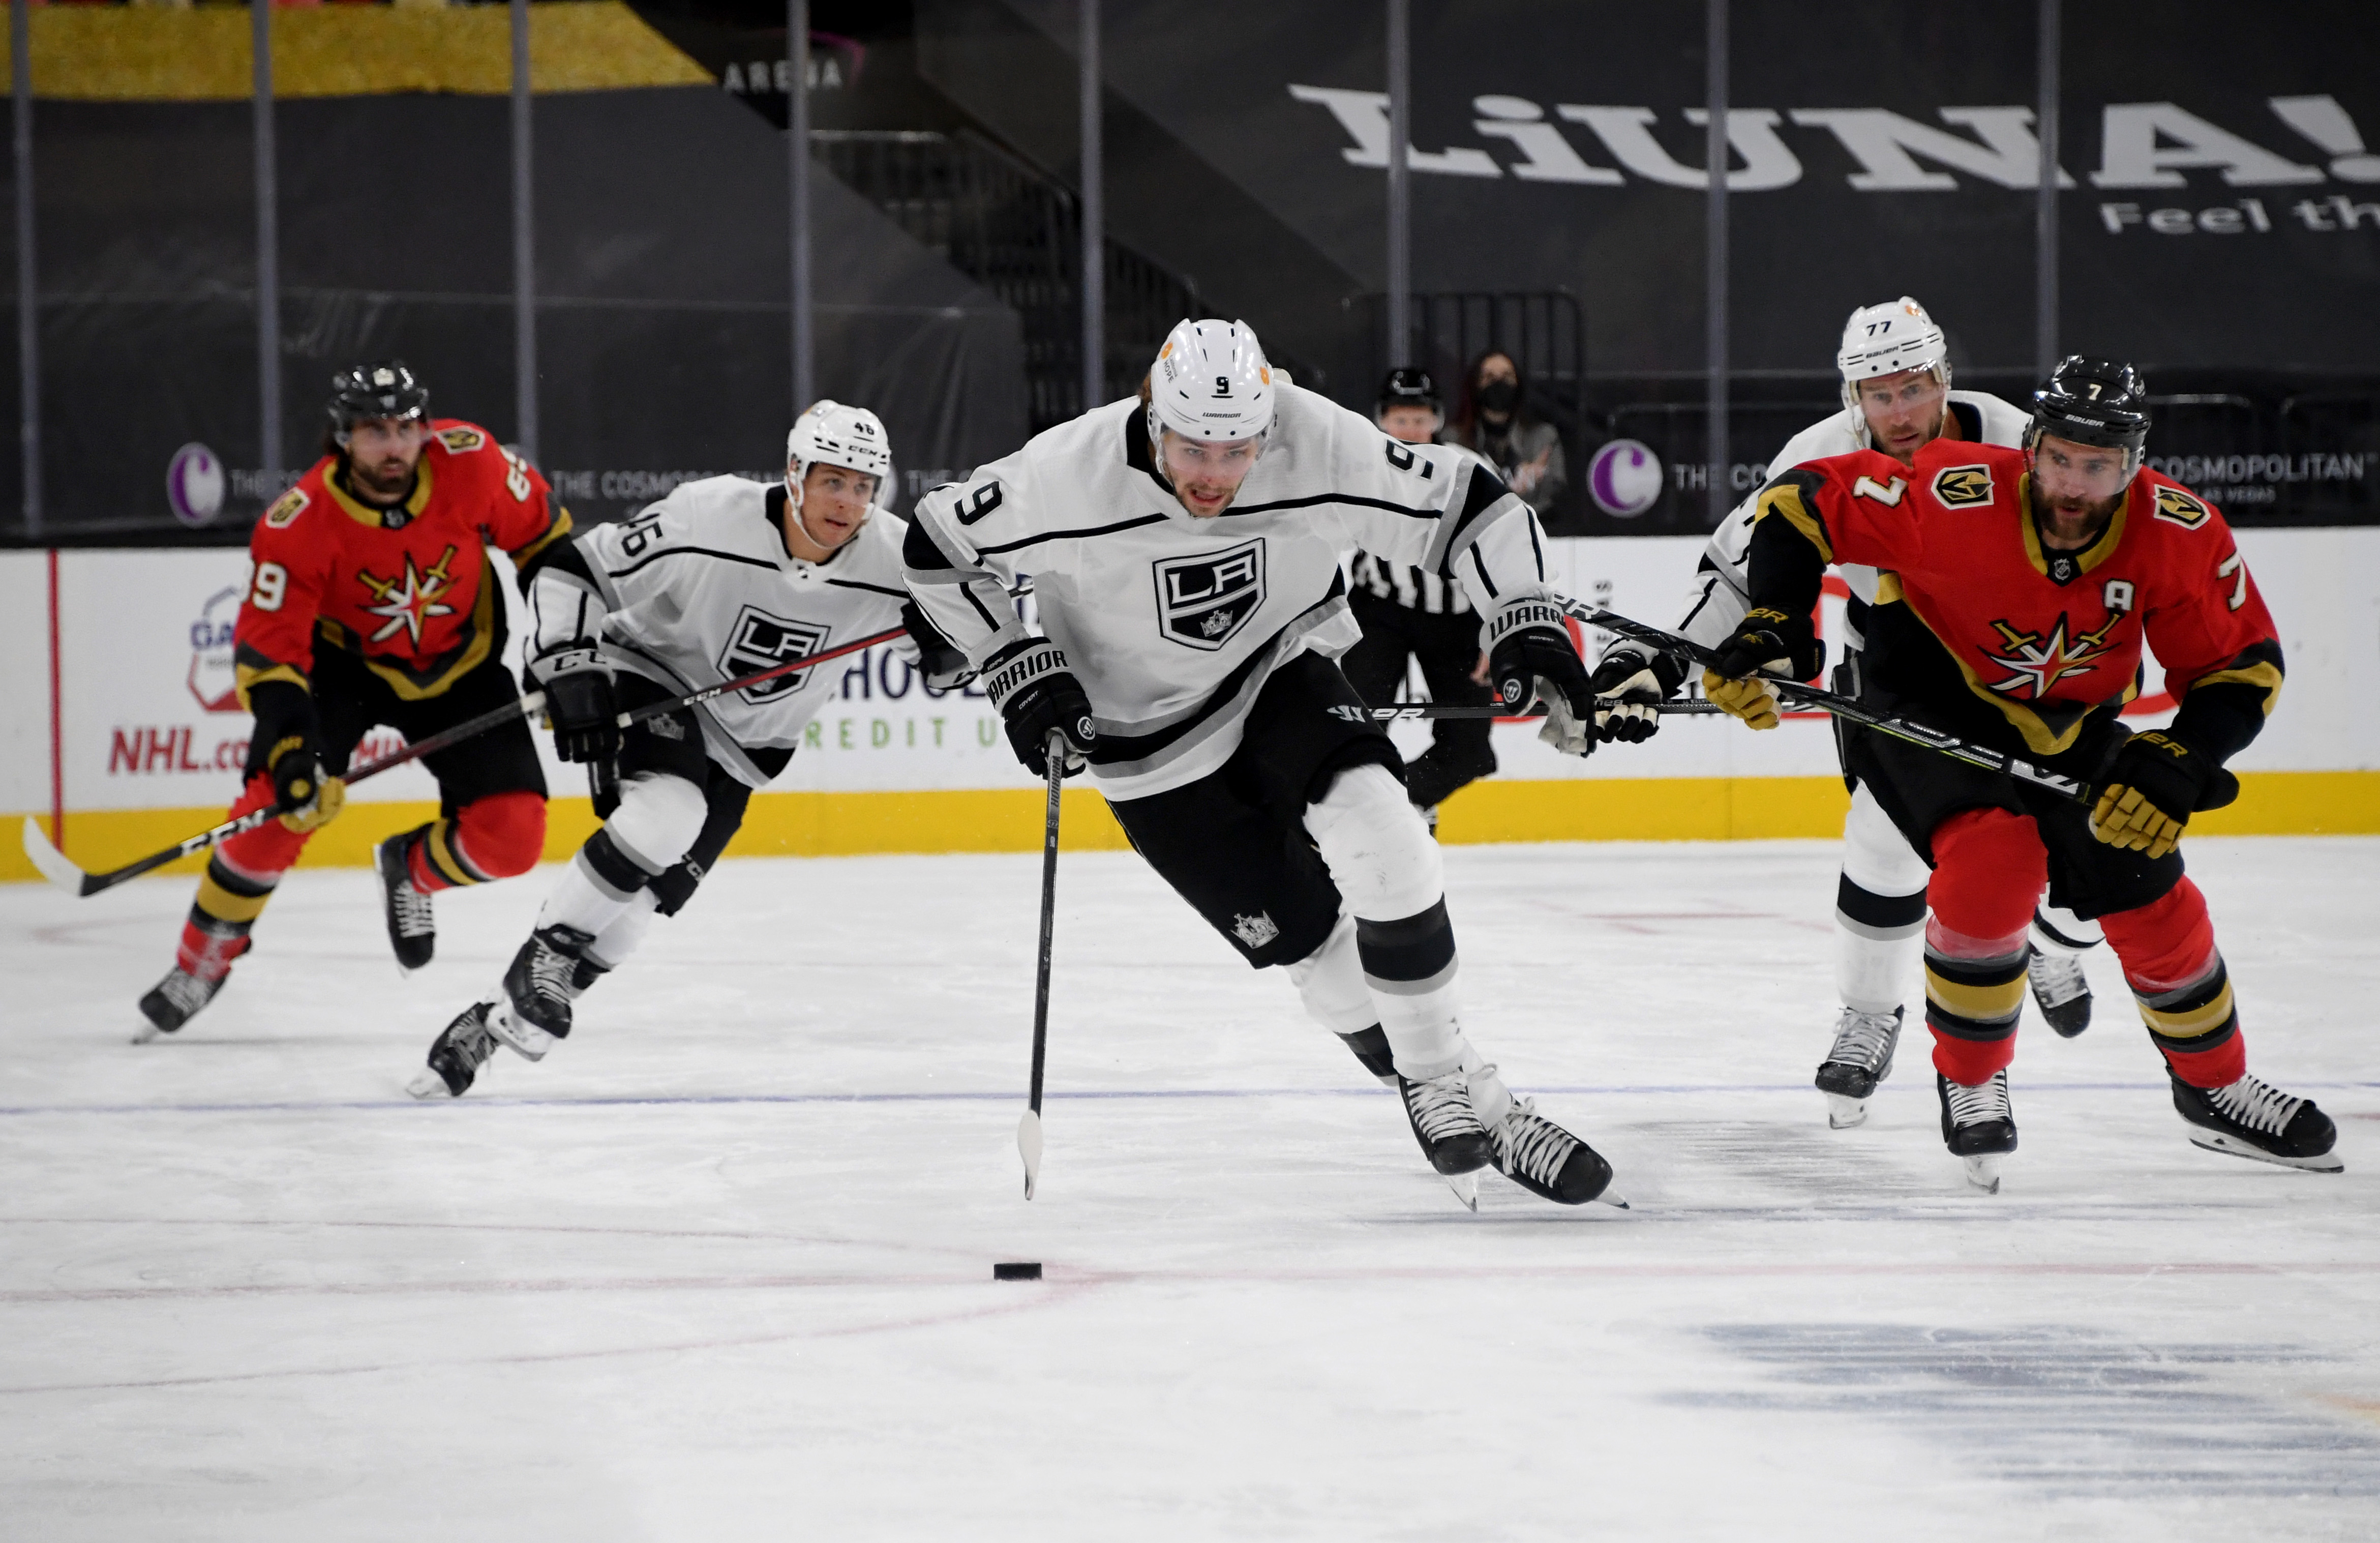 Adrian Kempe #9 of the Los Angeles Kings skates with the puck against the Vegas Golden Knights in the first period of their game at T-Mobile Arena on March 31, 2021 in Las Vegas, Nevada. The Kings defeated the Golden Knights 4-2.